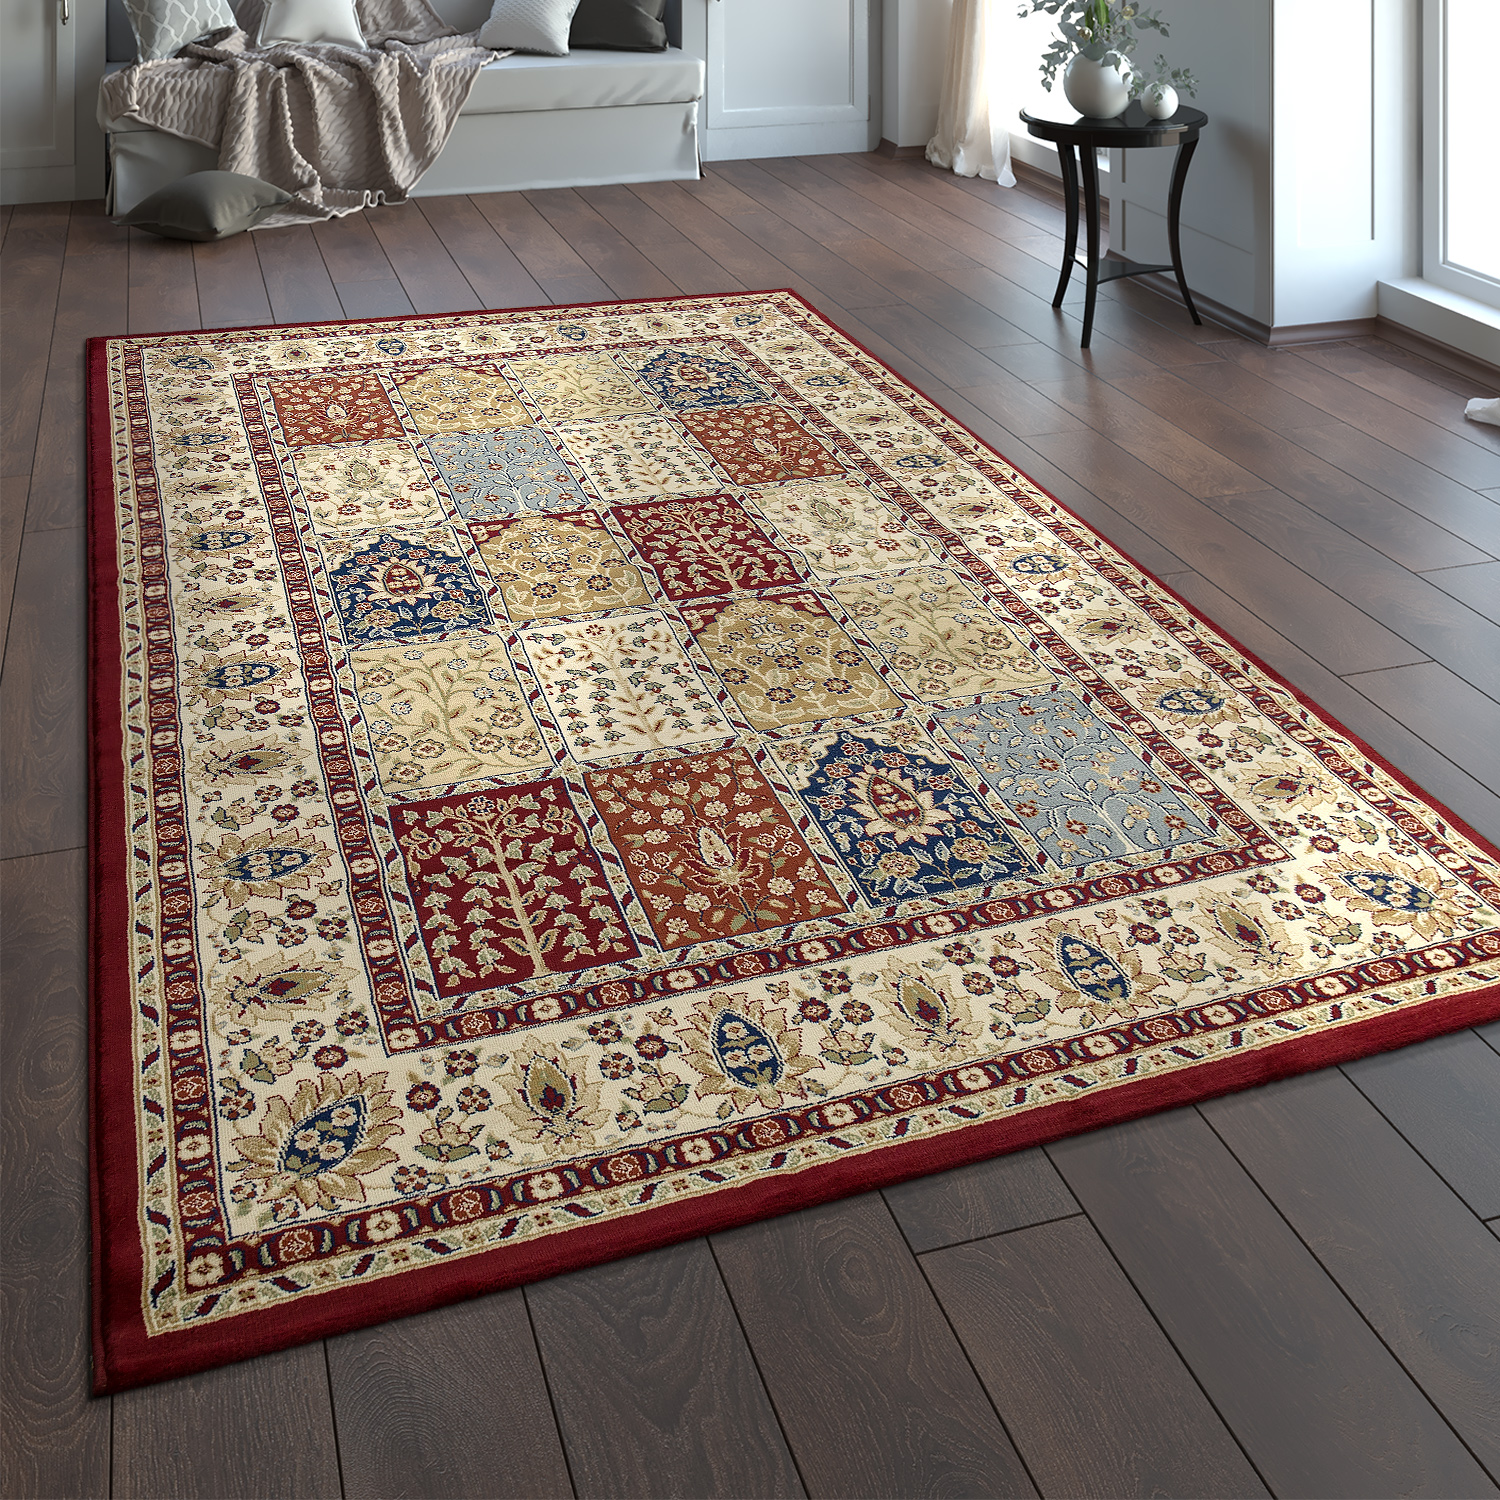 Oriental Rug Traditional Persian Look Border Ornaments Red Blue Beige